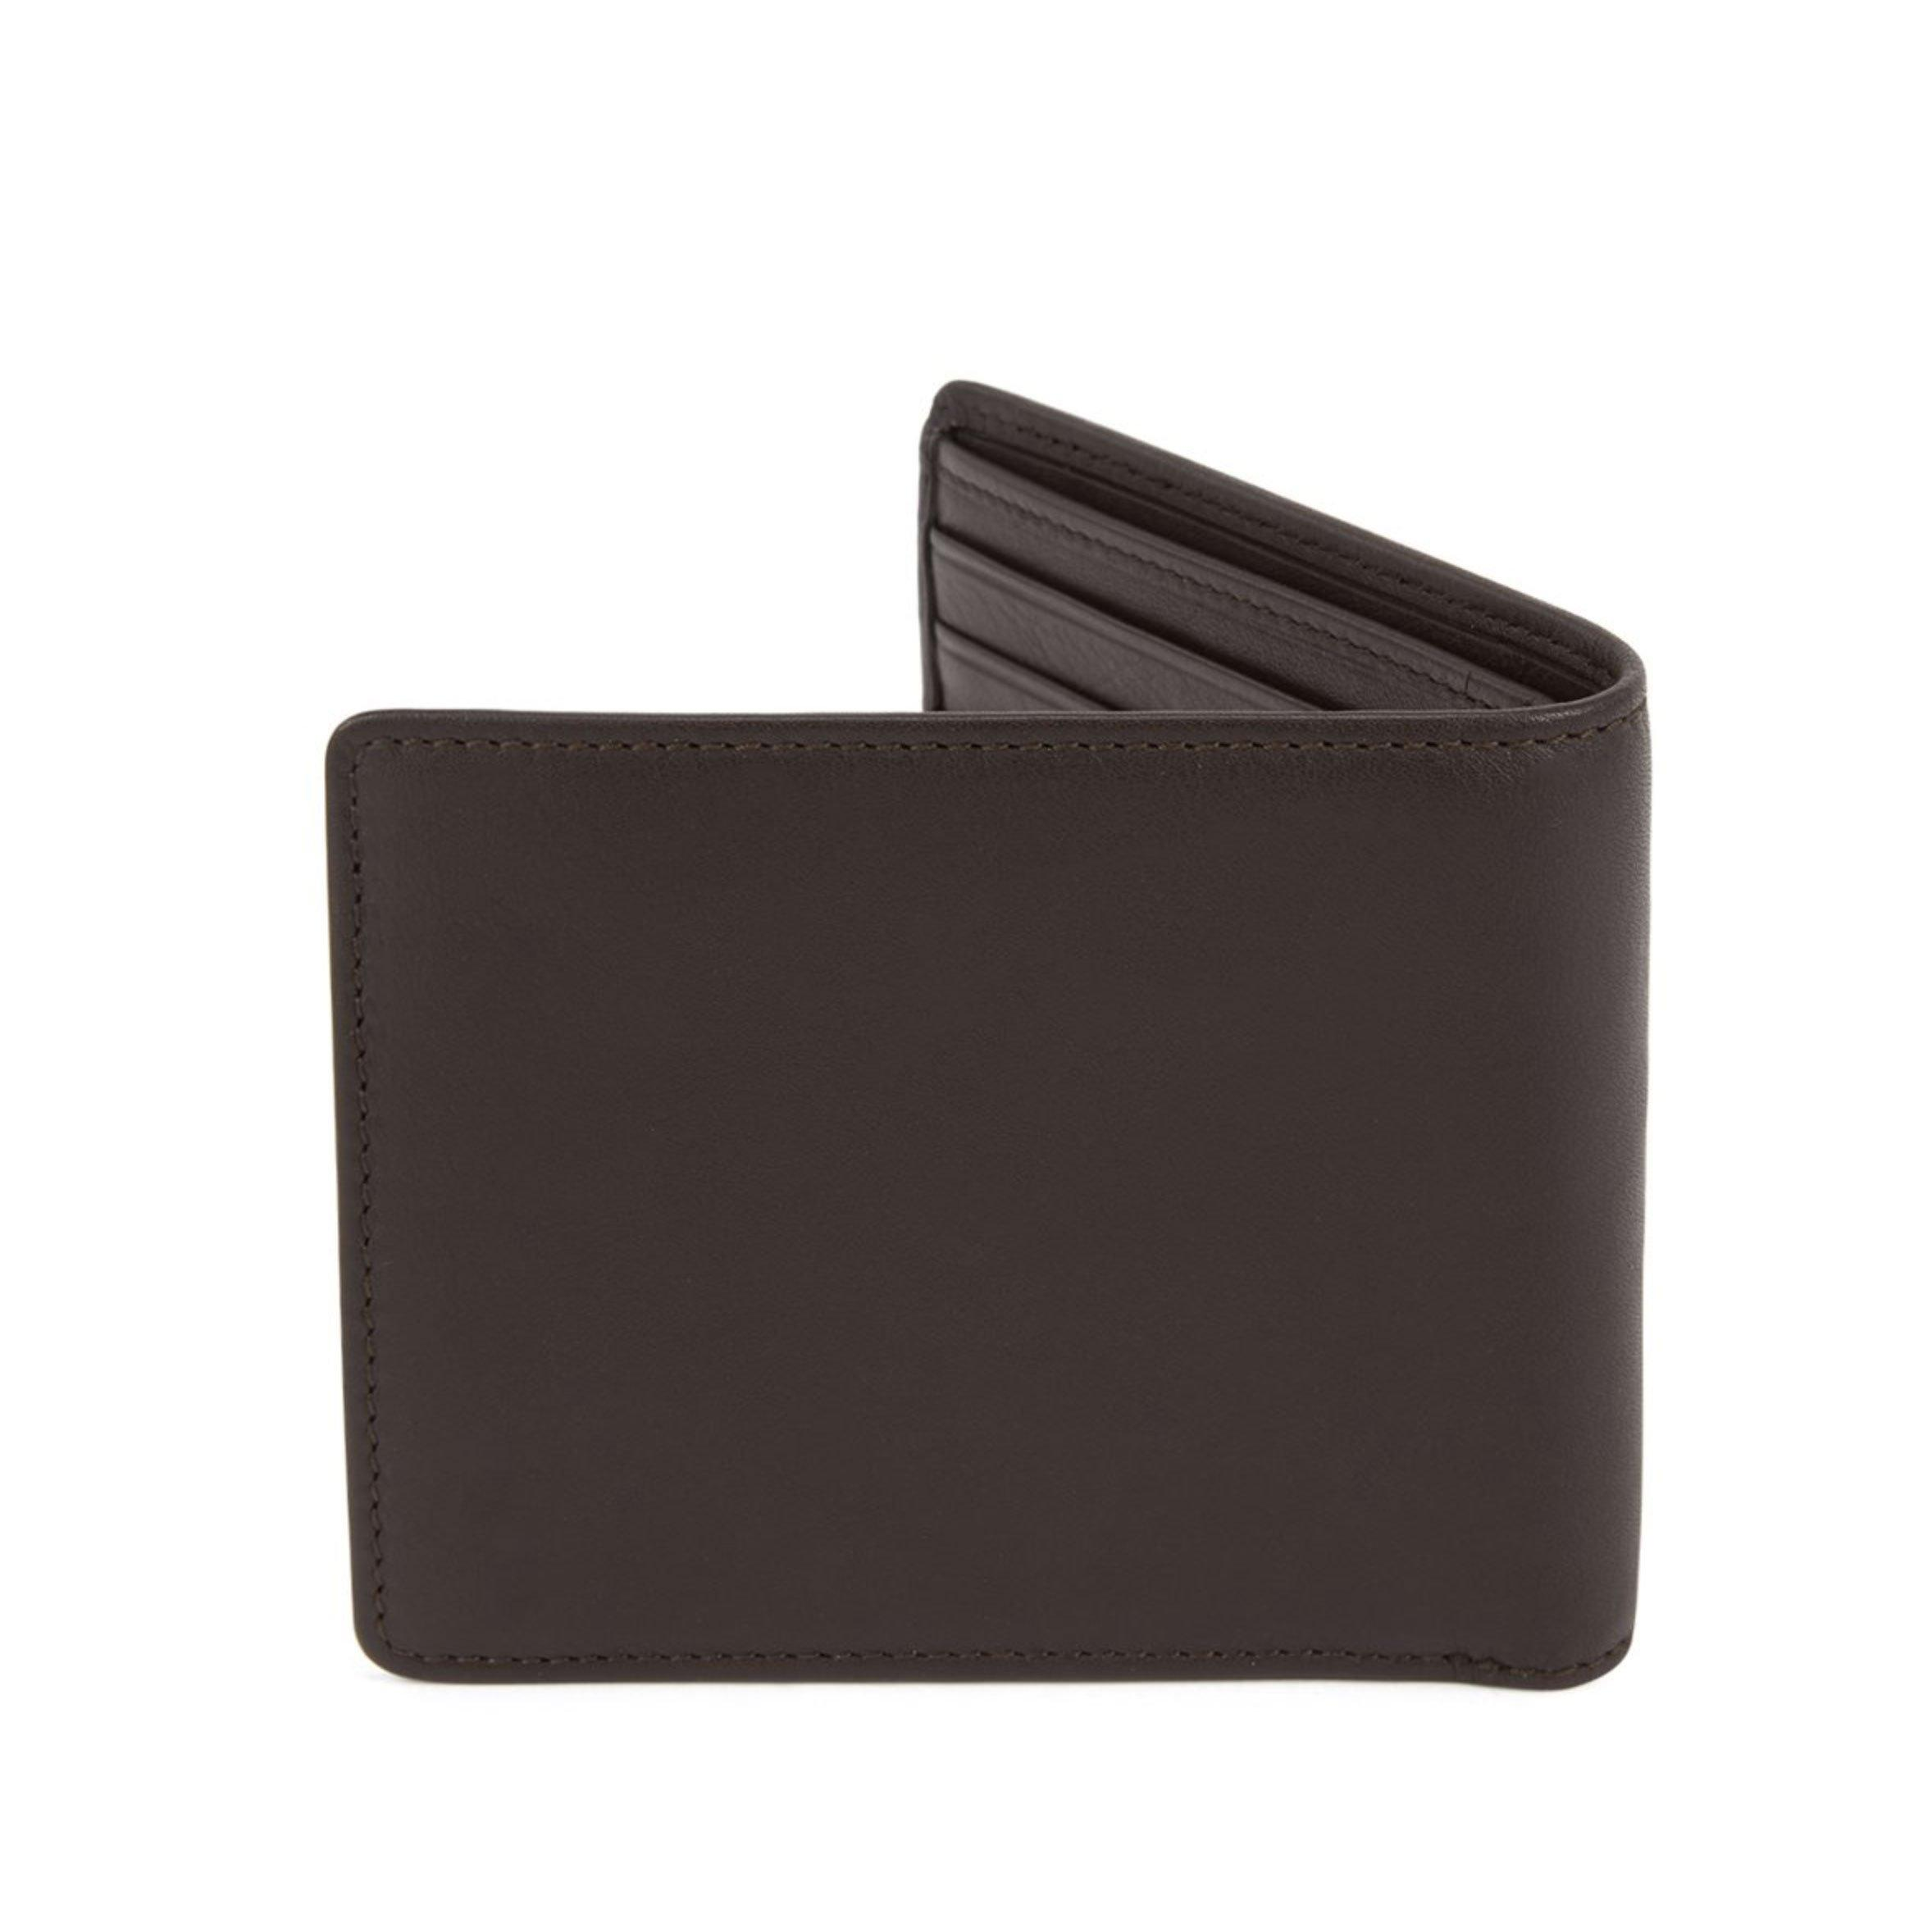 BOSS Brown Leather Wallet